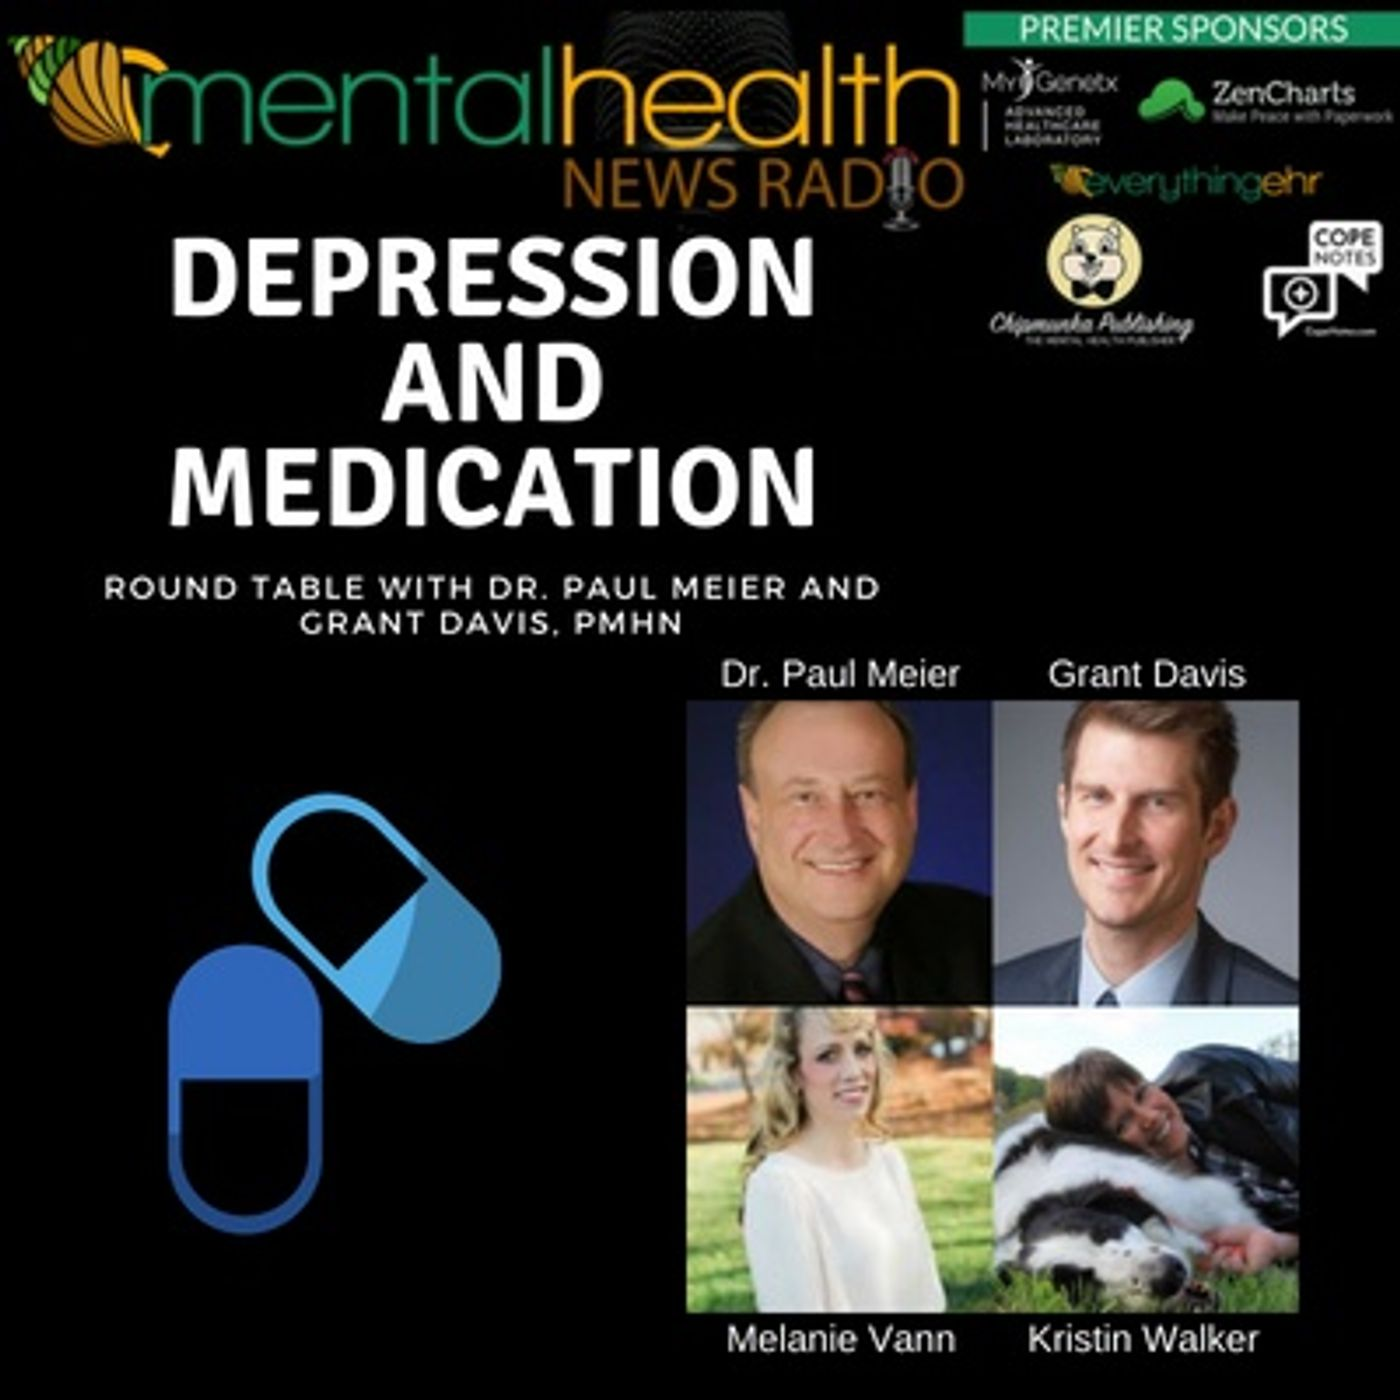 Mental Health News Radio - Round Table with Dr. Paul Meier: Depression and Medication